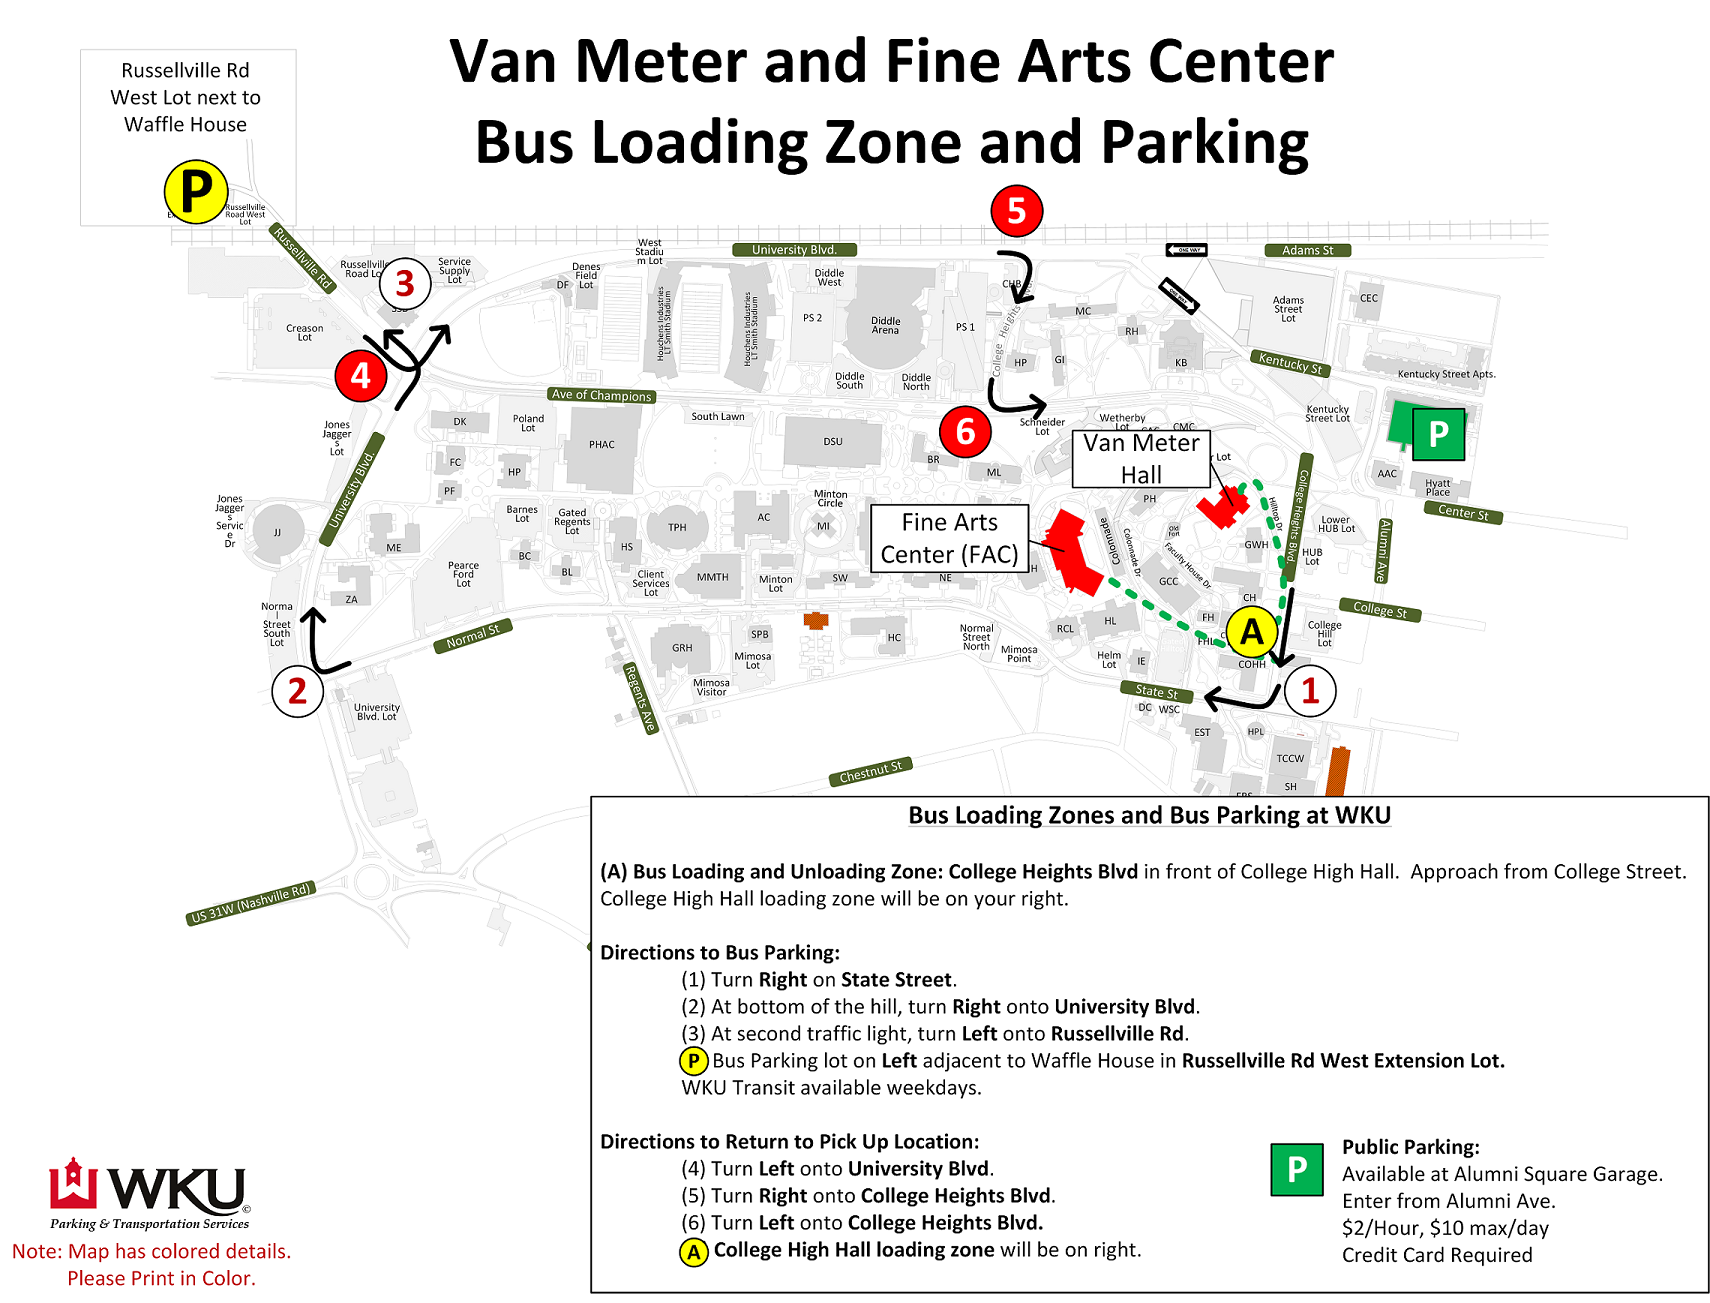 map of parking for events